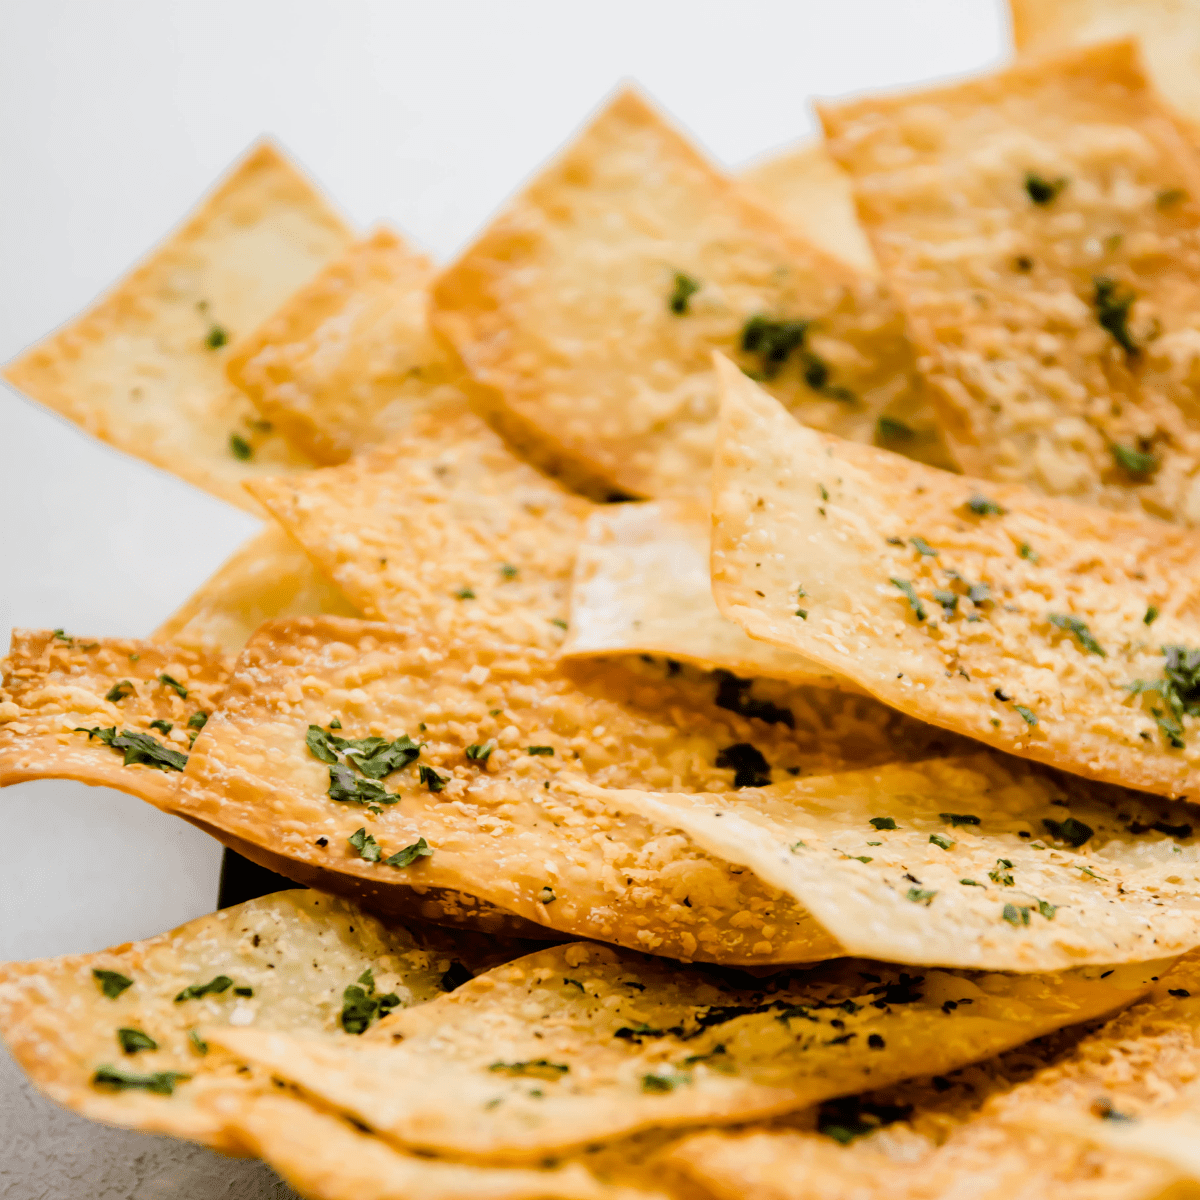 Homemade crackers on a black plate.